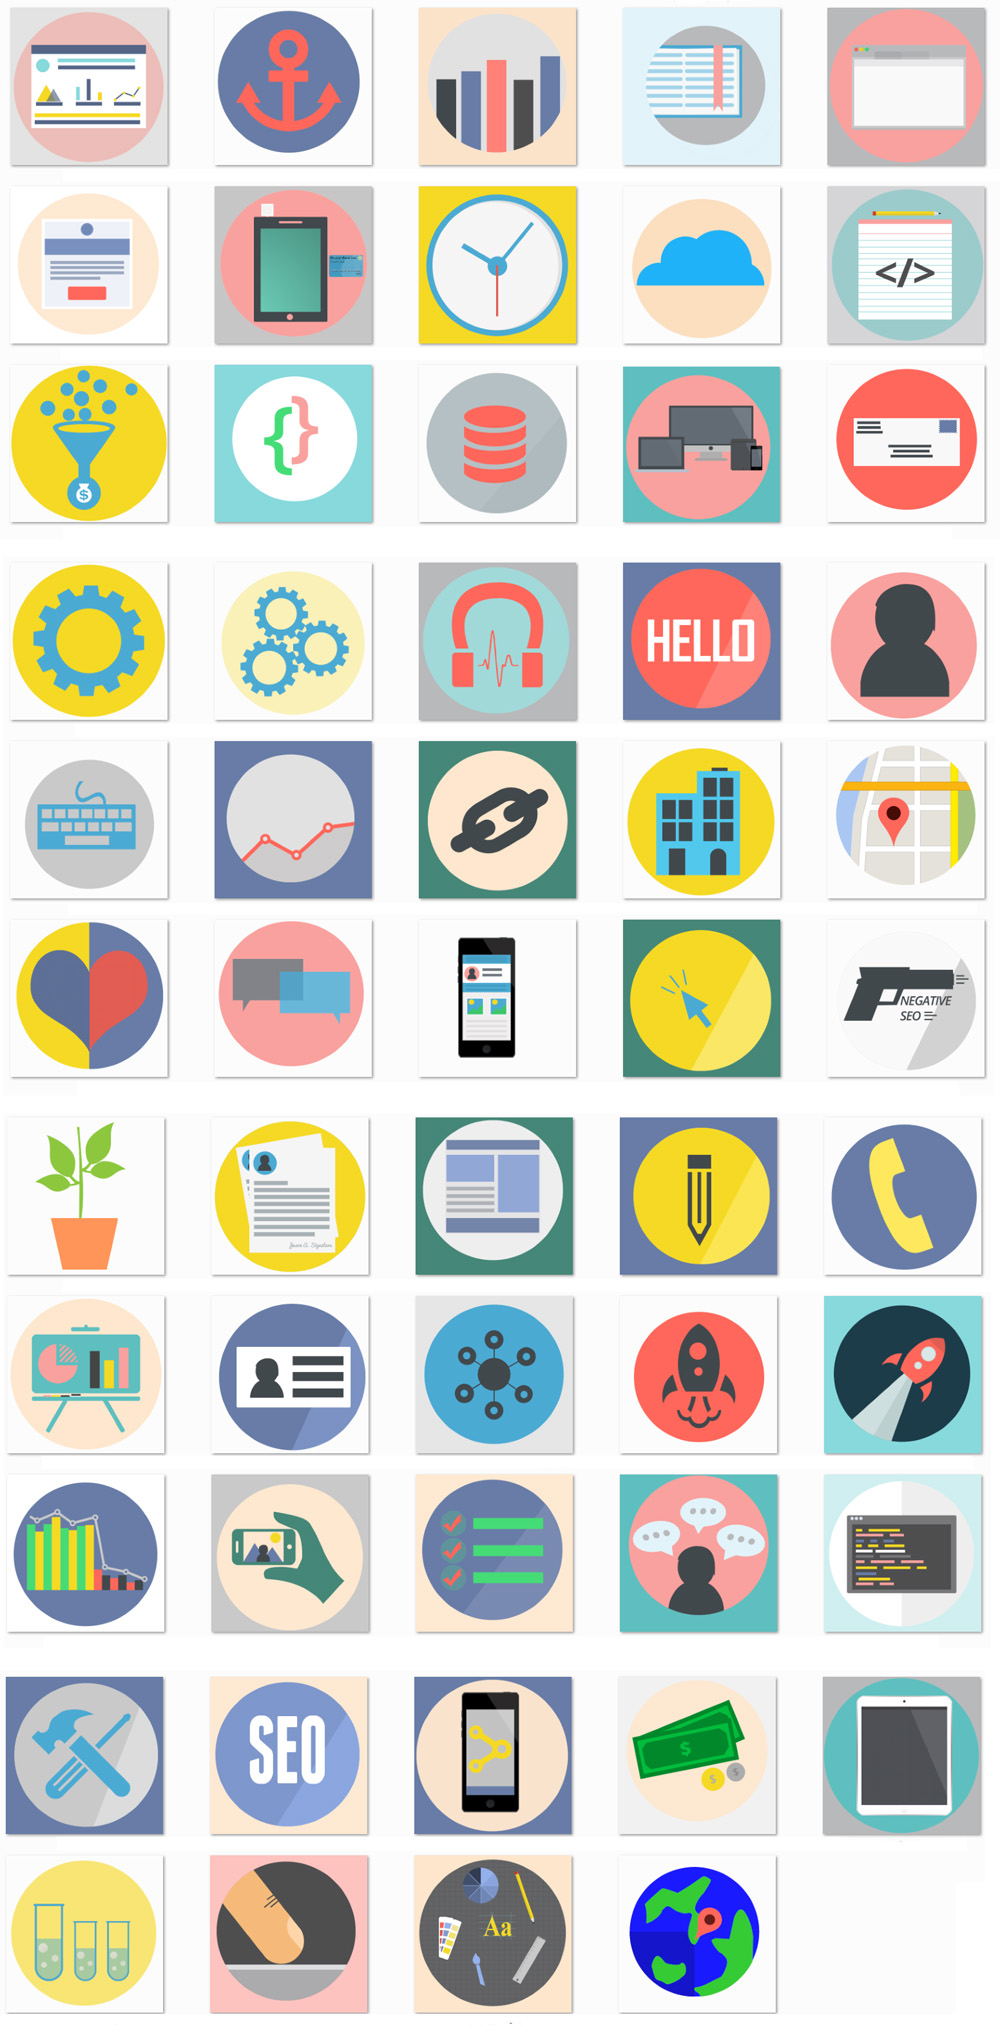 seo icons images preview